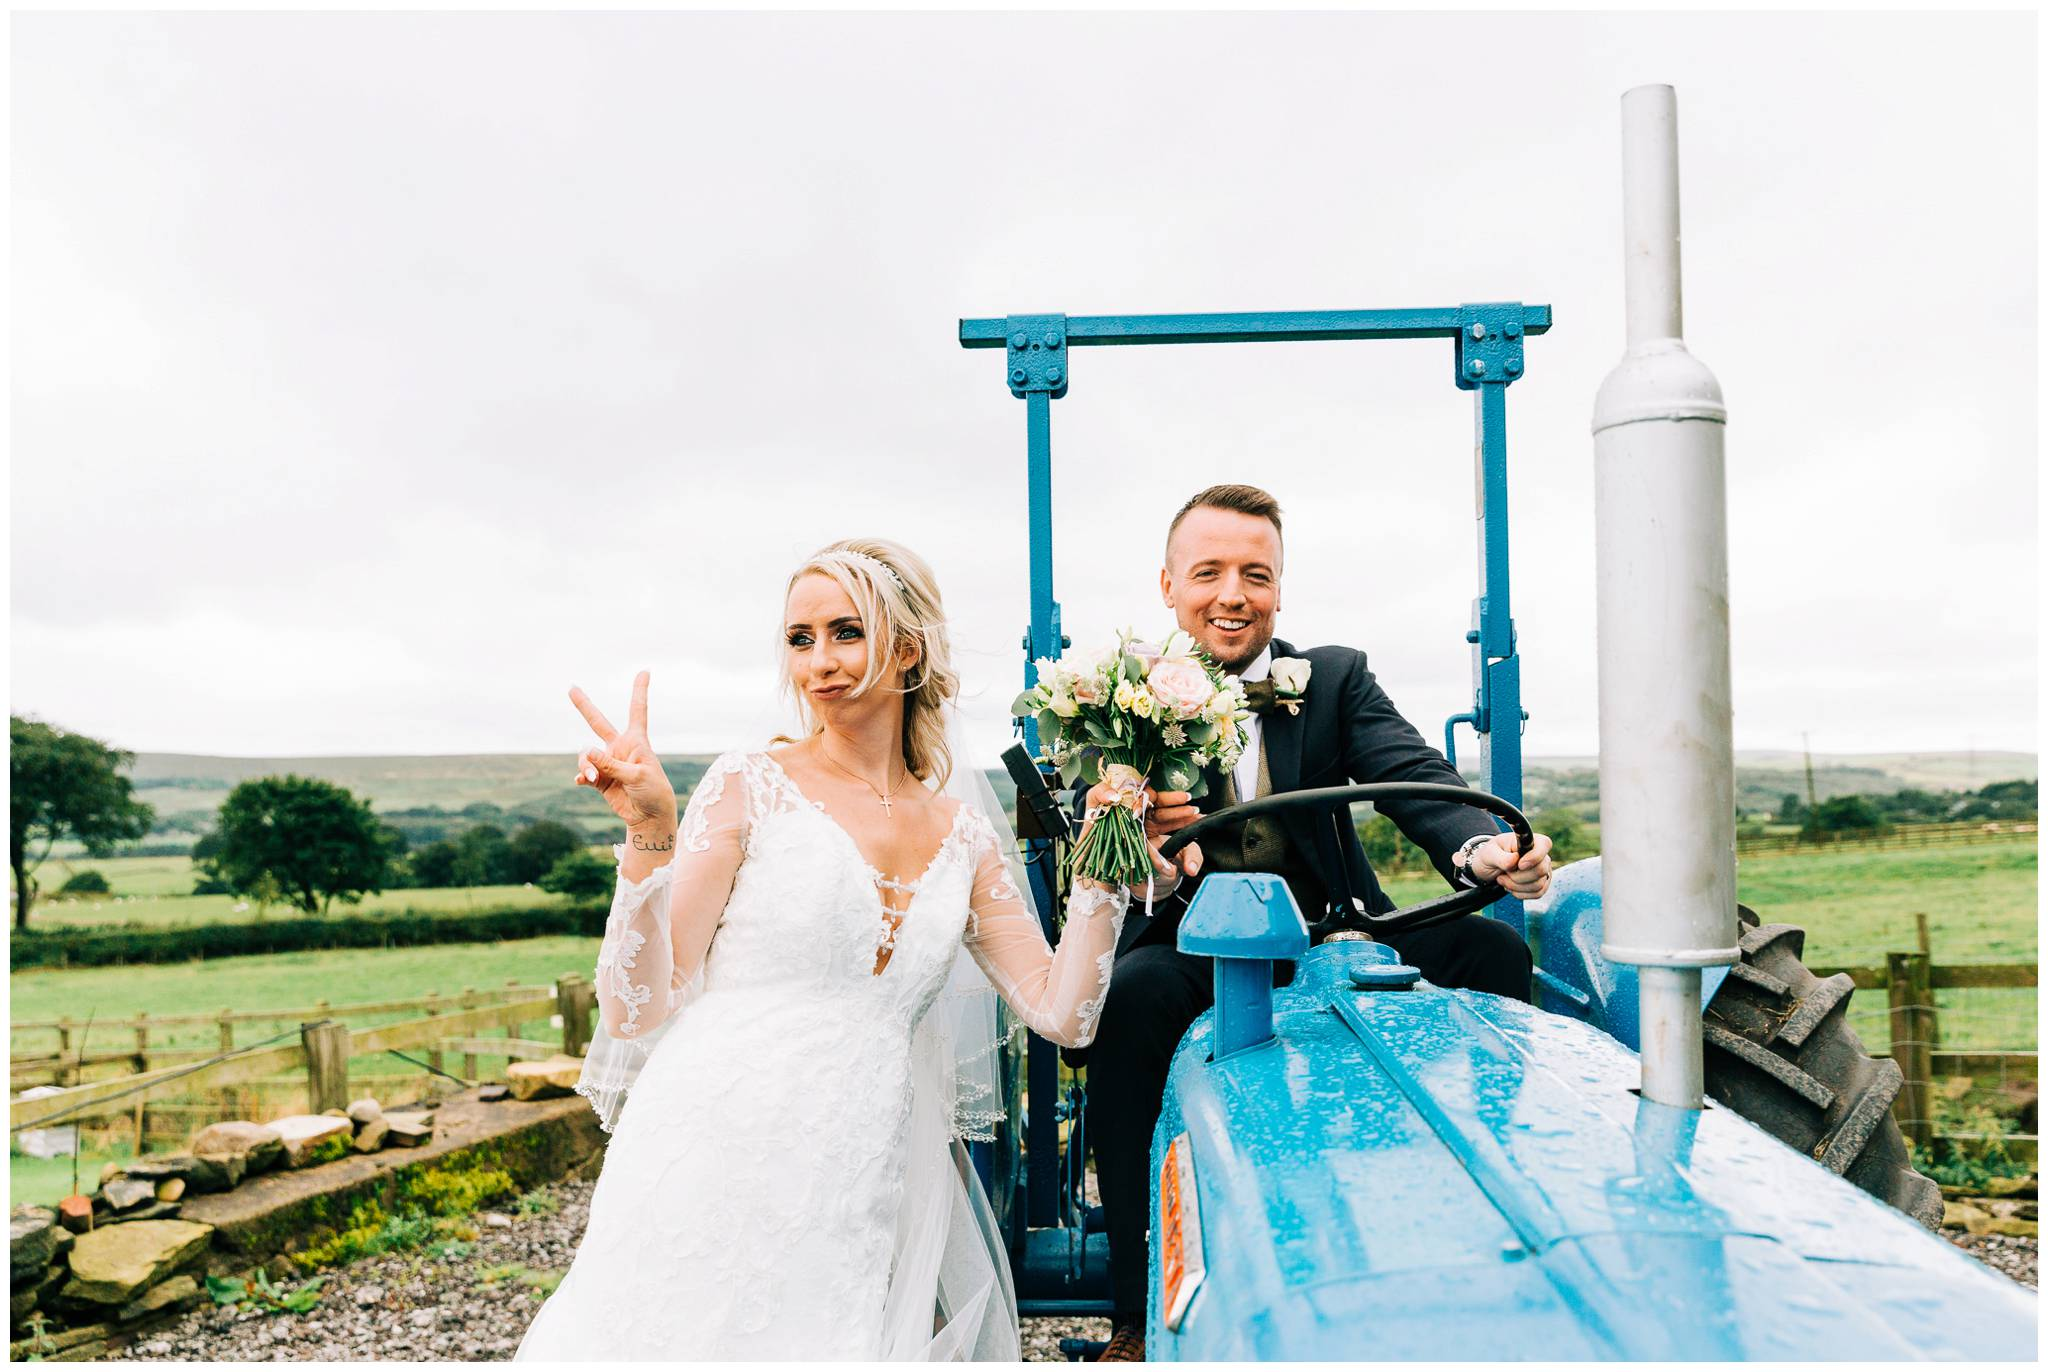 Festival wedding at Wellbeing Farm  - Bolton Wedding Photographer_0044.jpg